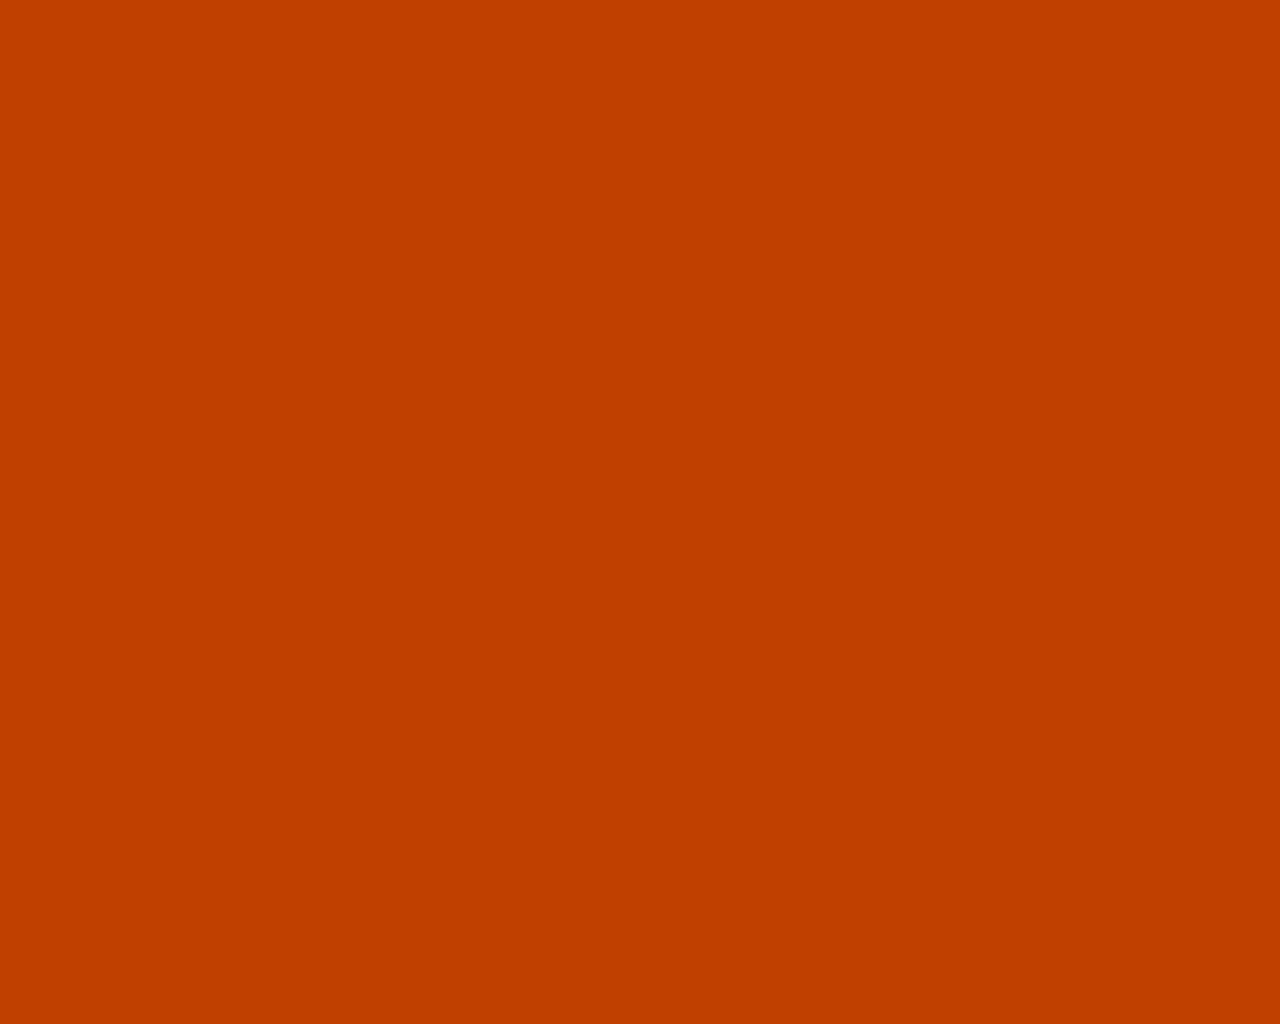 1280x1024 Mahogany Solid Color Background